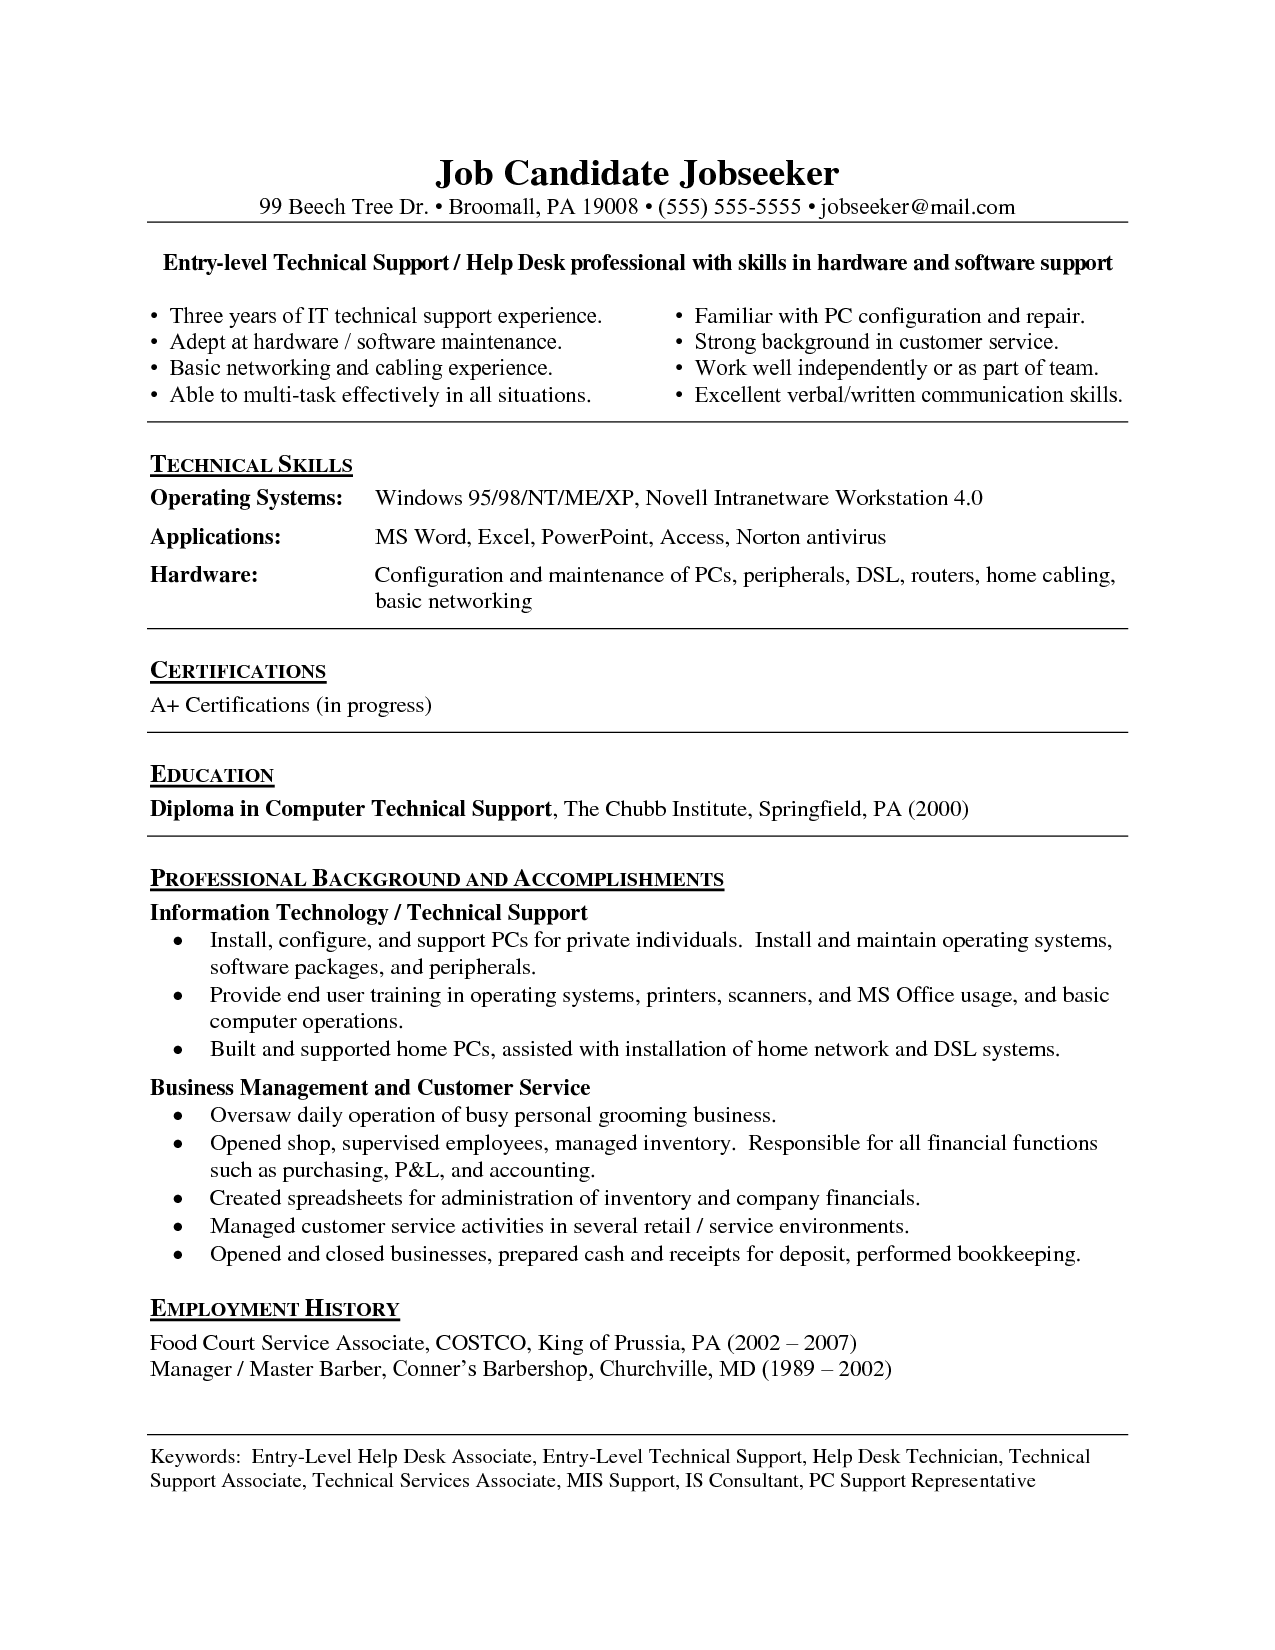 resume for help desk job belenchambercomresume help cover